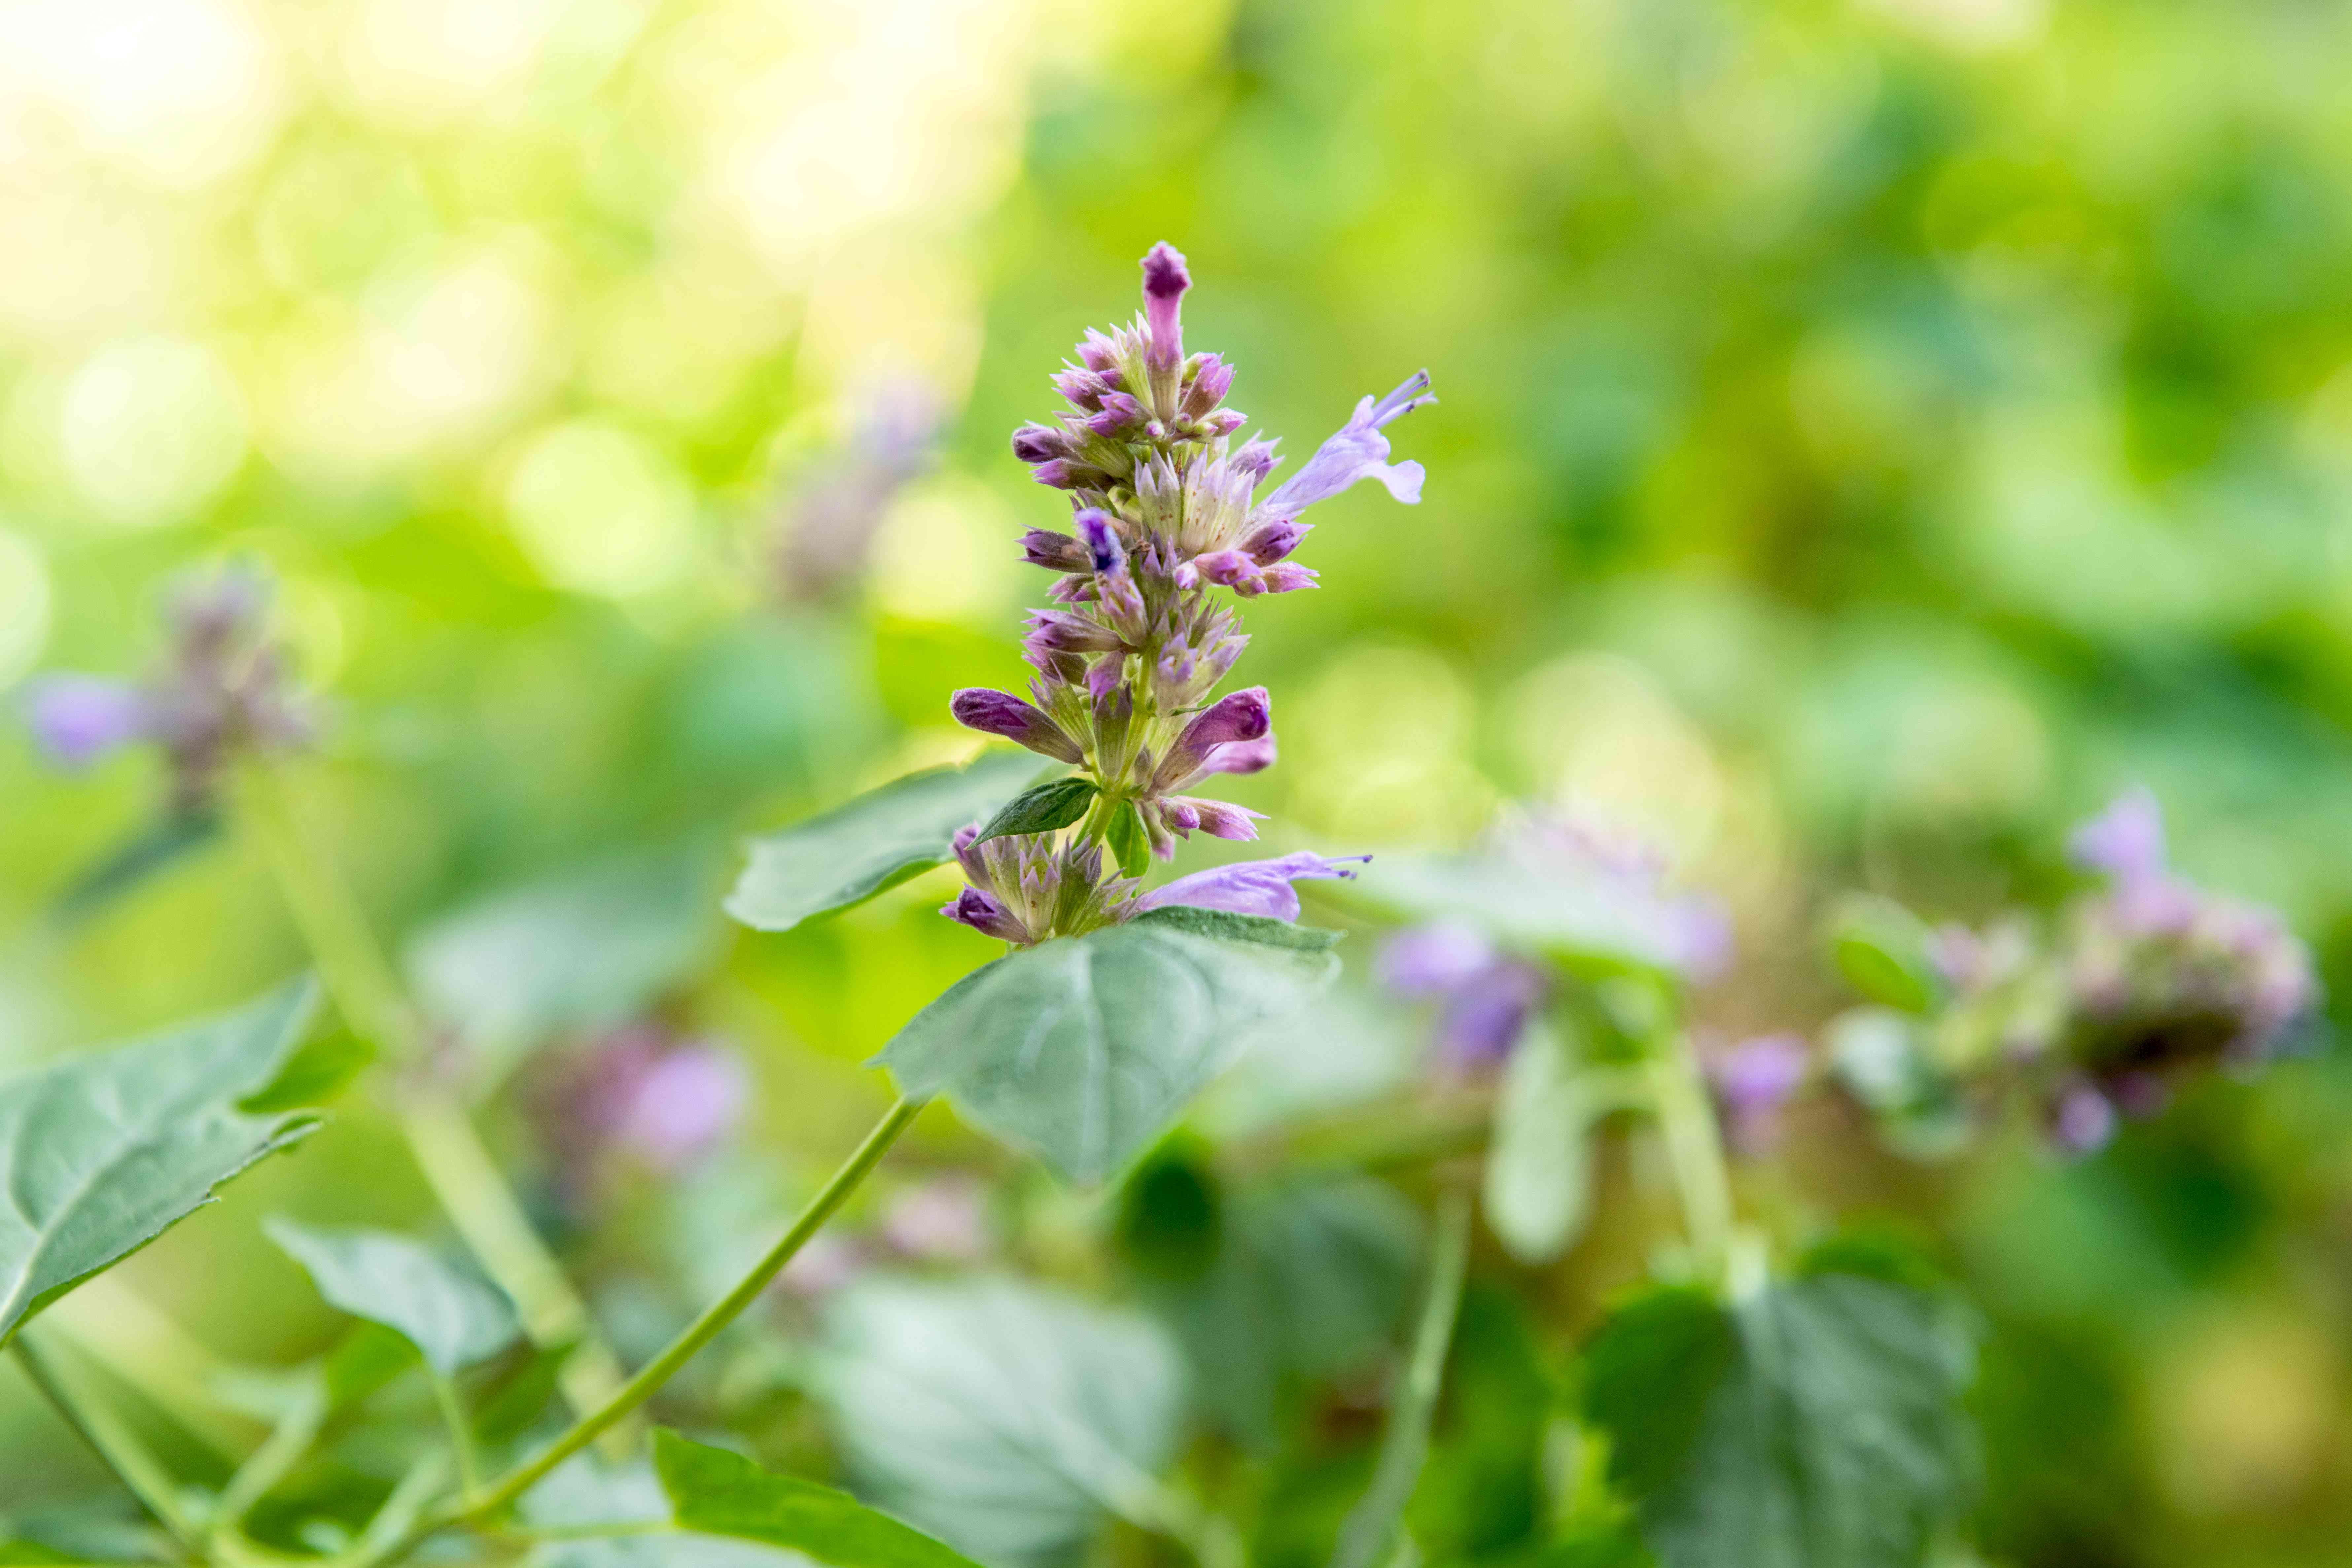 Agastache plant with flower spike and tiny purple flowers budding on thin stem